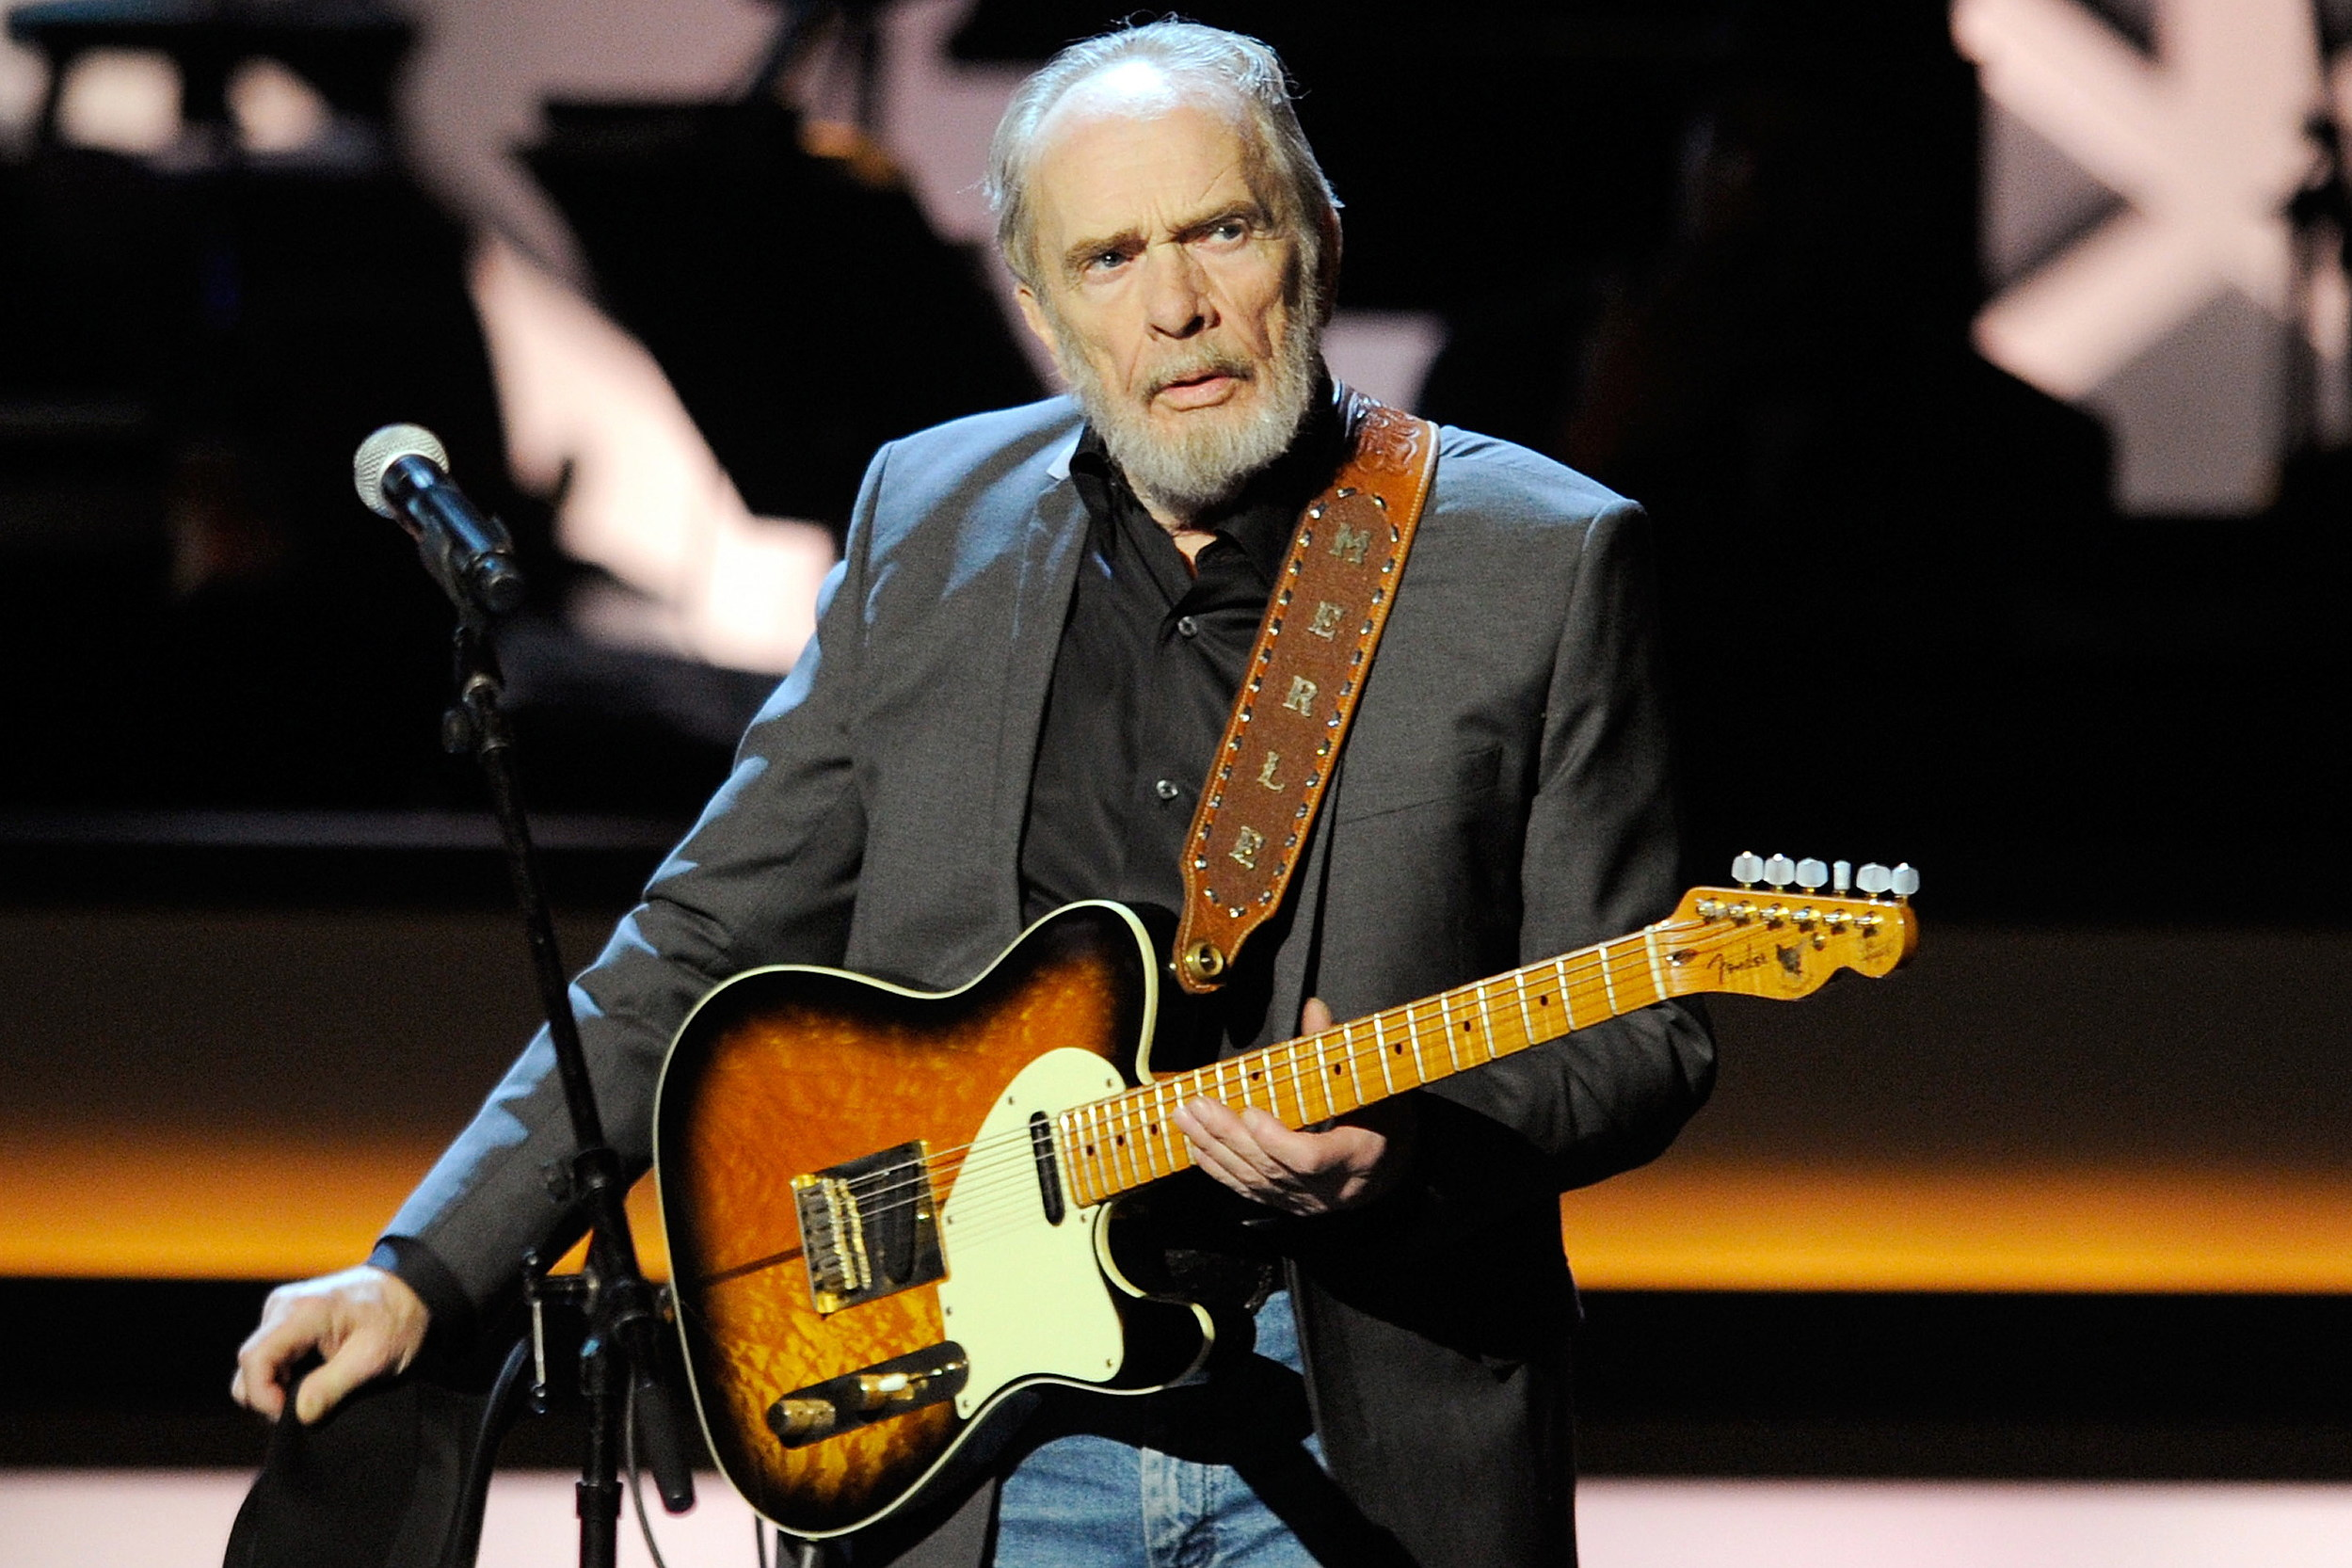 Merle Haggard: 'It's Criminal What They Do to Our President'